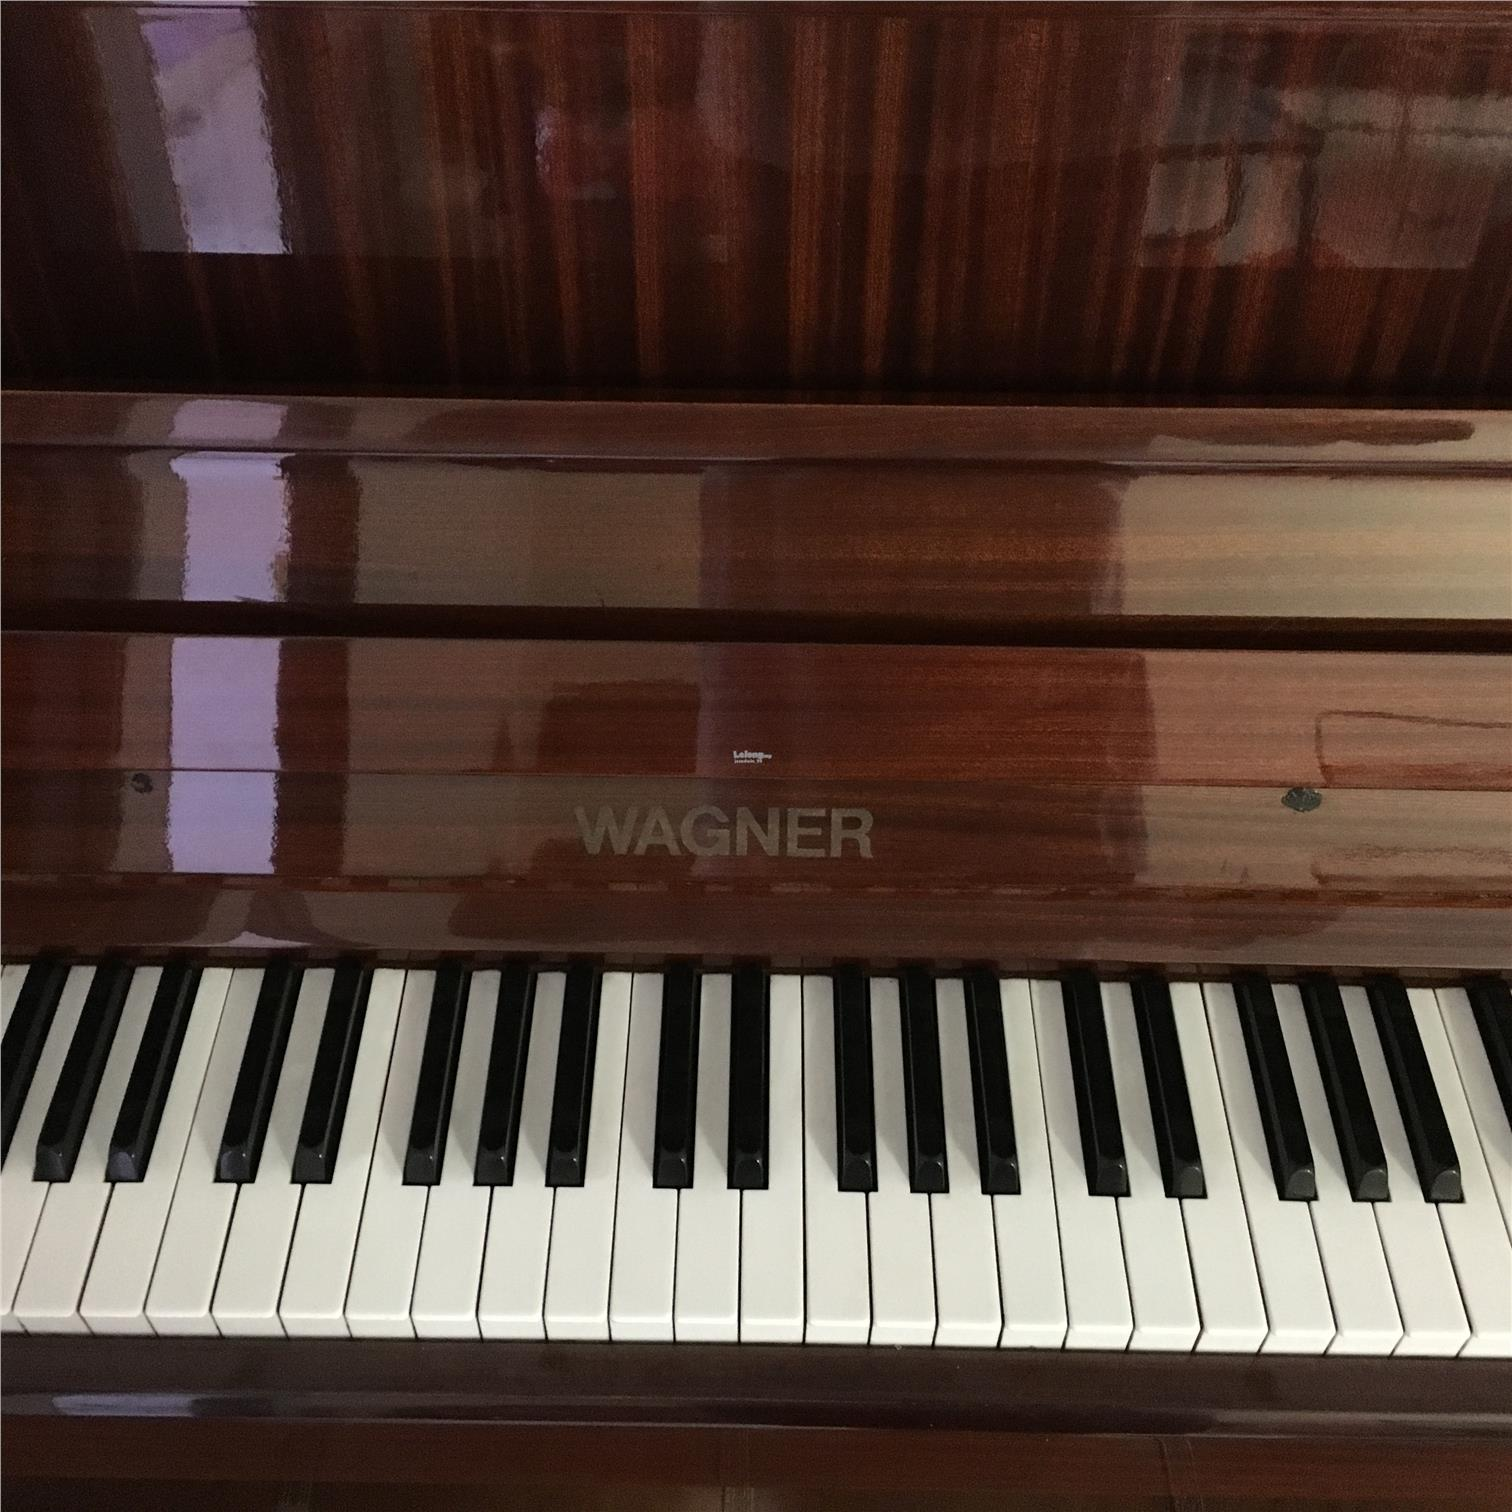 Wagner branded Piano For Sale